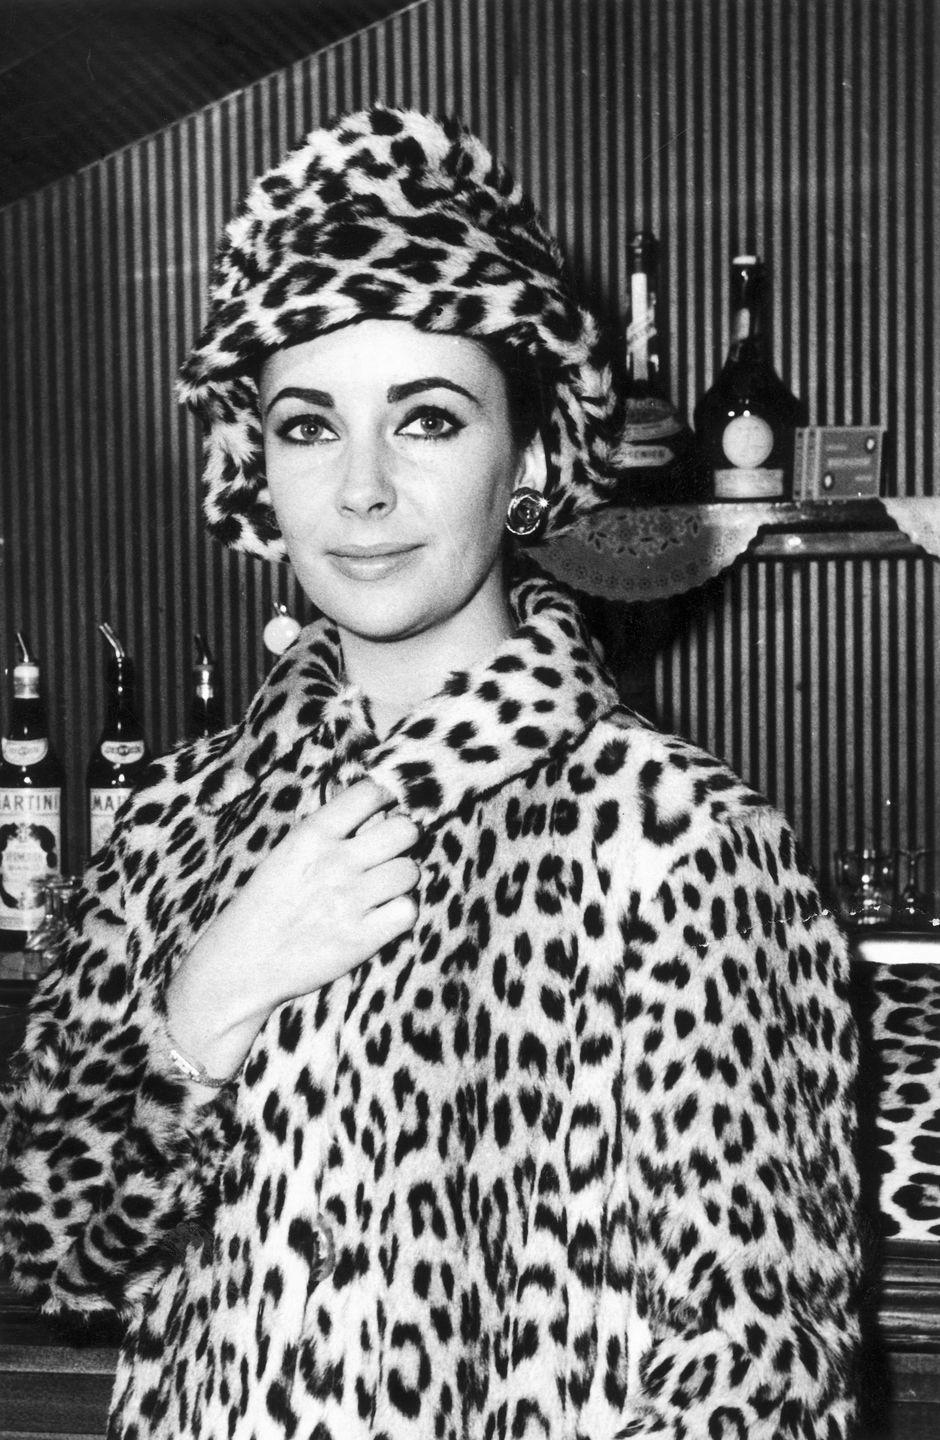 <p>Feeling feline? Elizabeth Taylor shows us how to wear head-to-toe leopard print with confidence.<br></p>